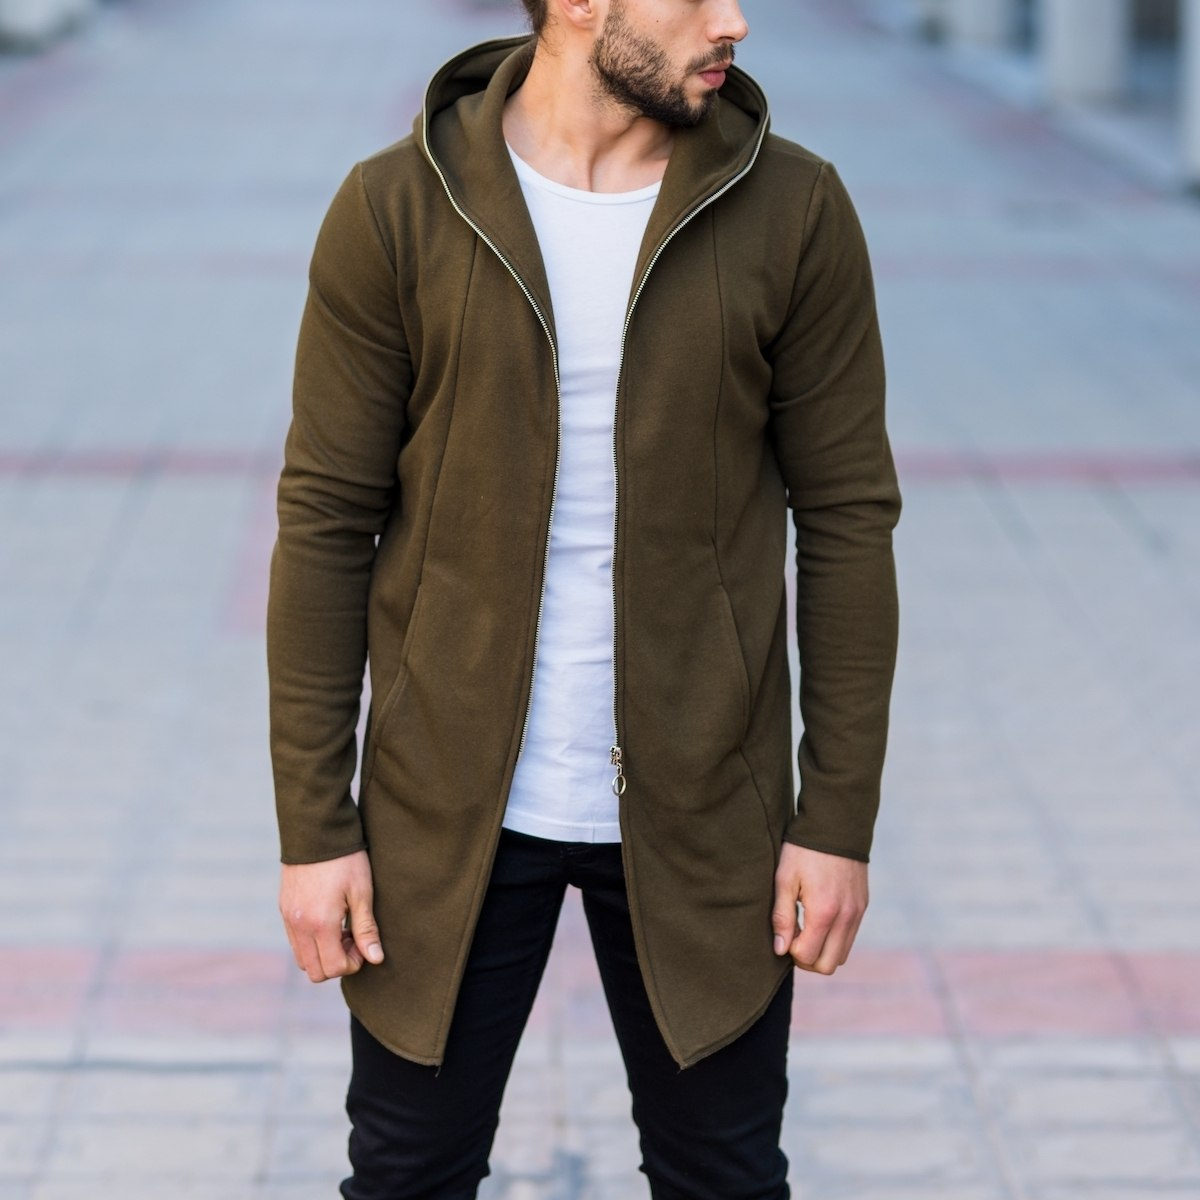 Men's Zipper Cardigan In Khaki